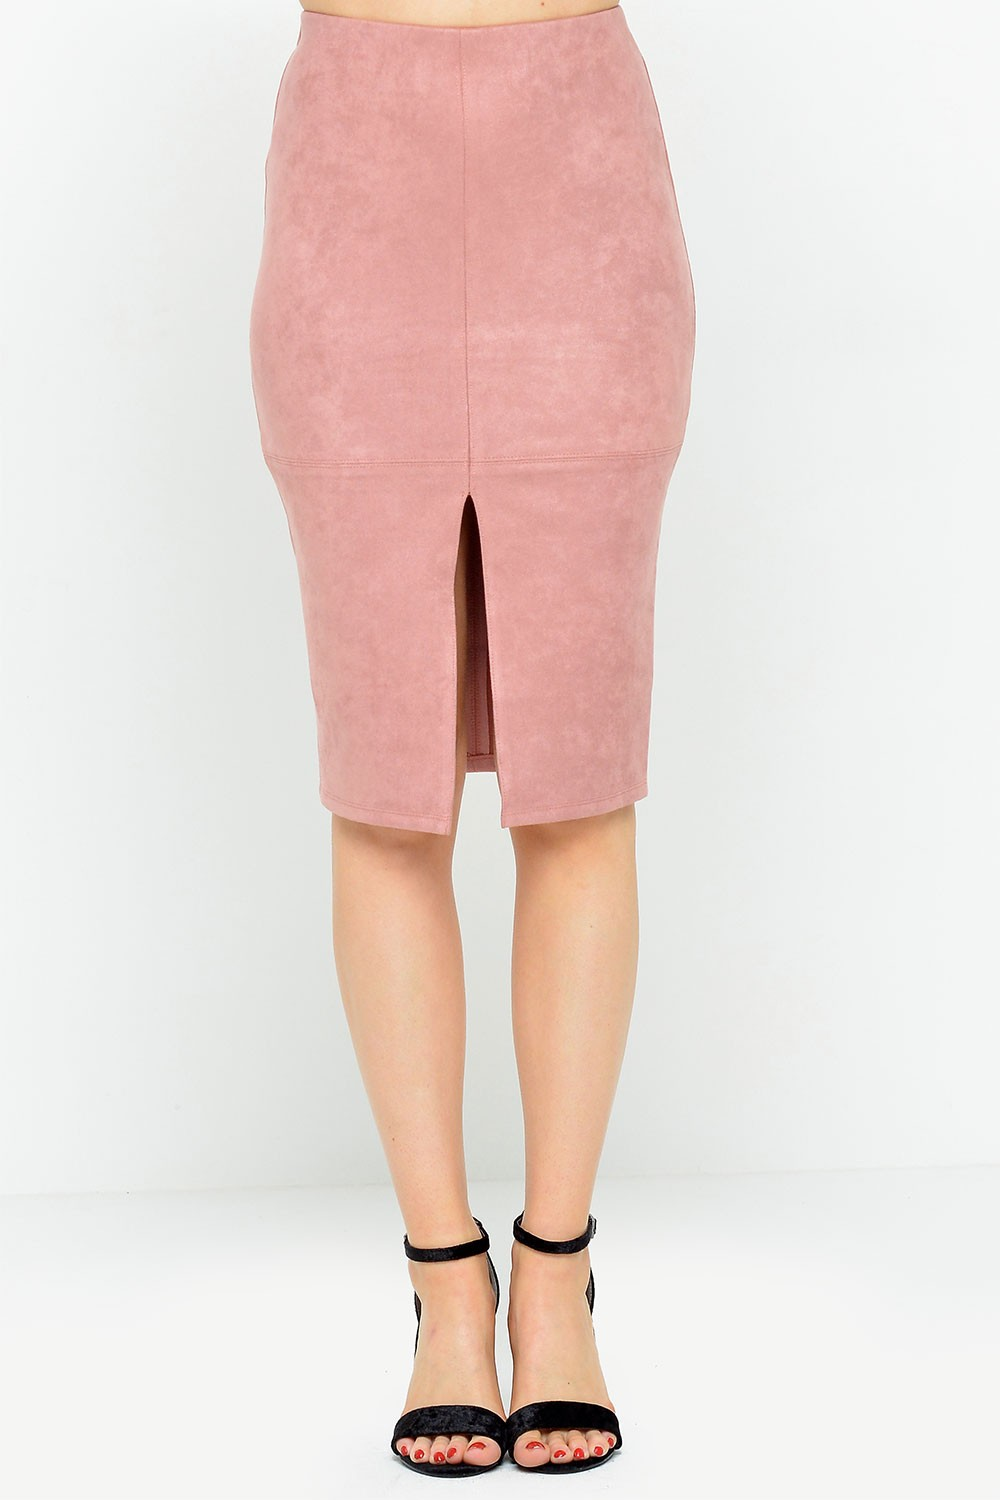 e57dd7ed54 Glamorous Lana Suedette Pencil Skirt in Dusty Pink | iCLOTHING